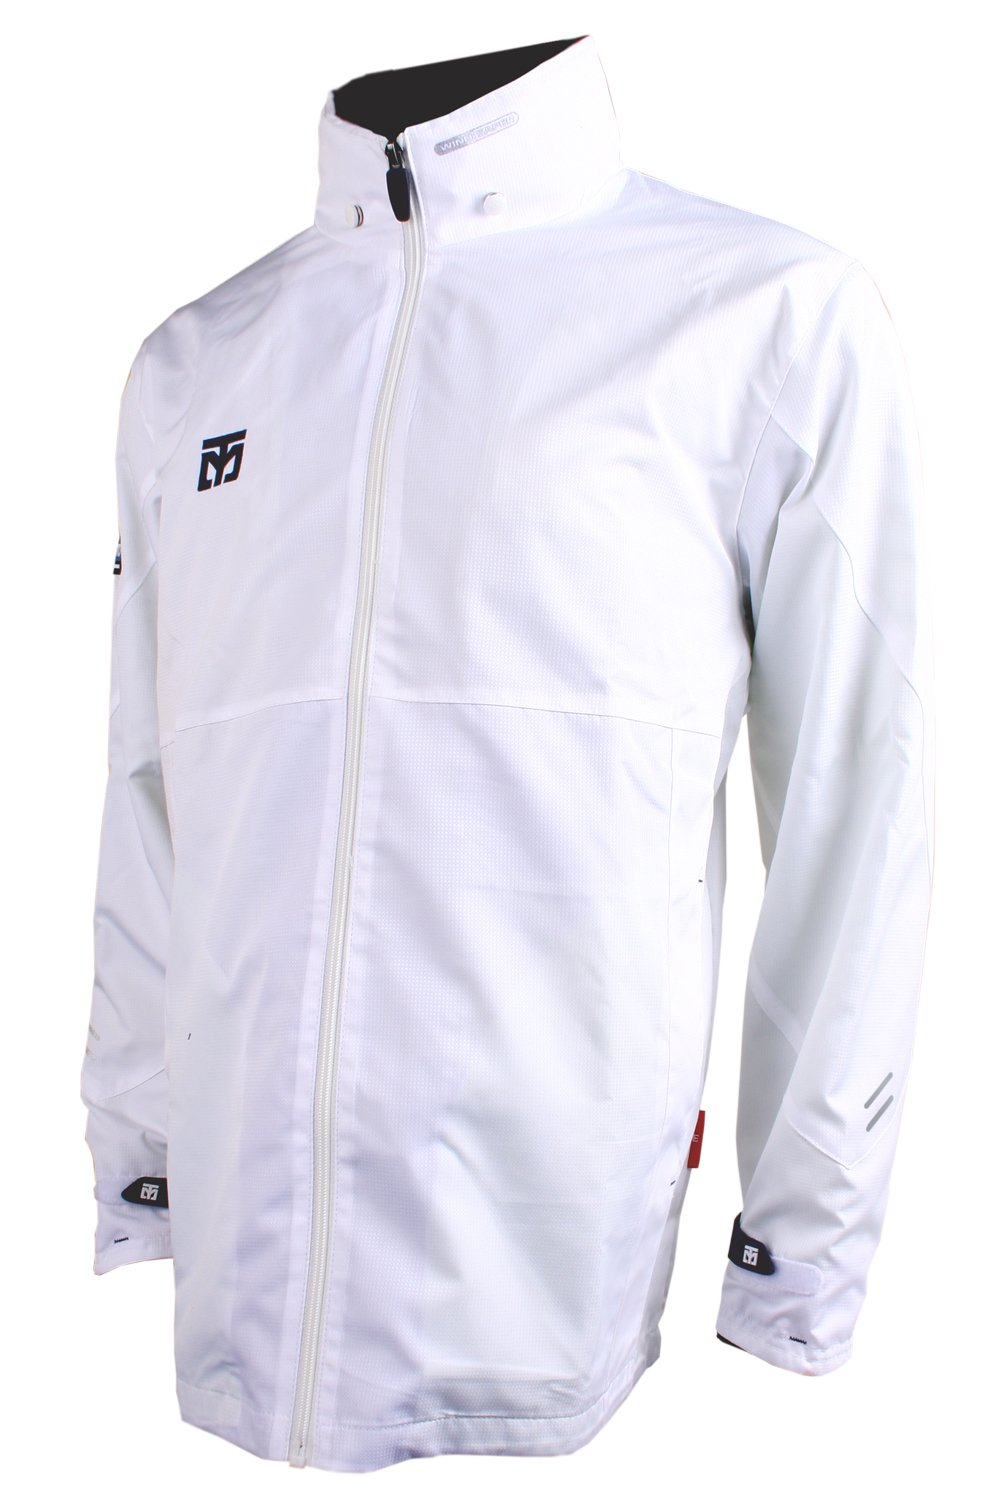 Mooto Wings Wind Breaker 4 Color Jacket Training TaeKwonDo 4.26ft to 6.88ft (White, 180(170cm-180cm or 5.57ft-5.90ft)) by Mooto